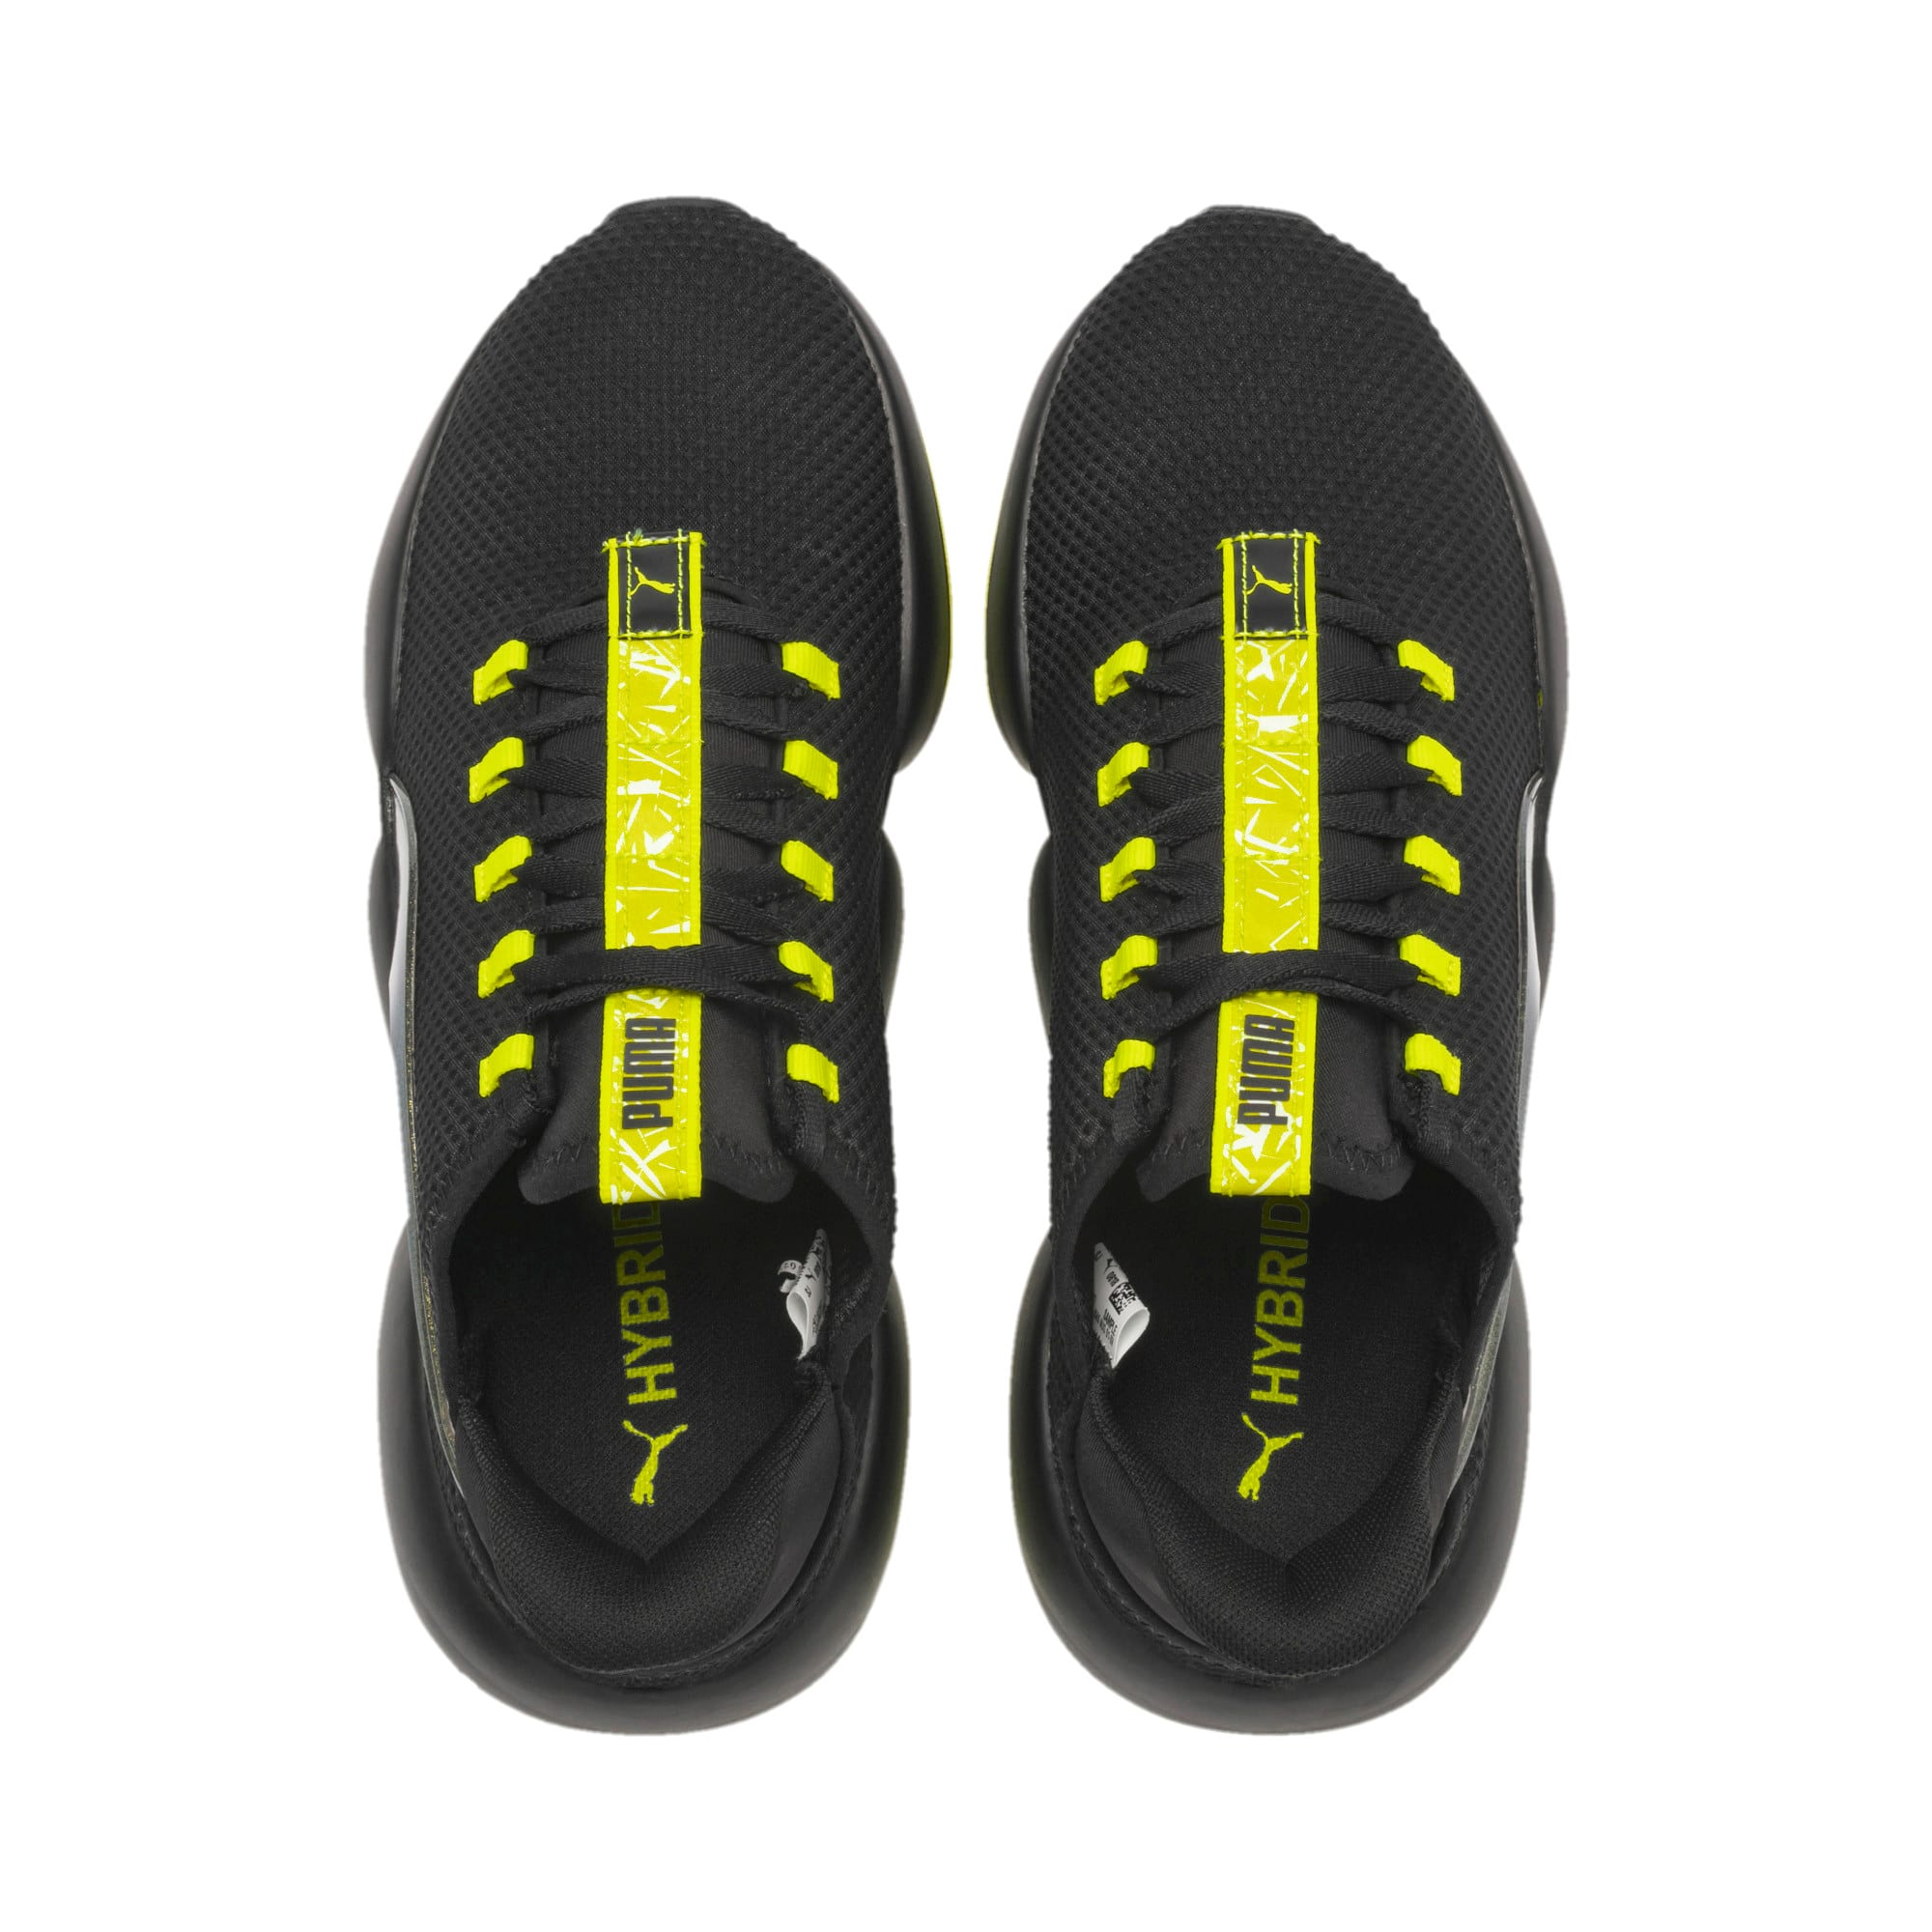 Thumbnail 7 of Mode XT Shift Women's Training Shoes, Puma Black-Yellow Alert, medium